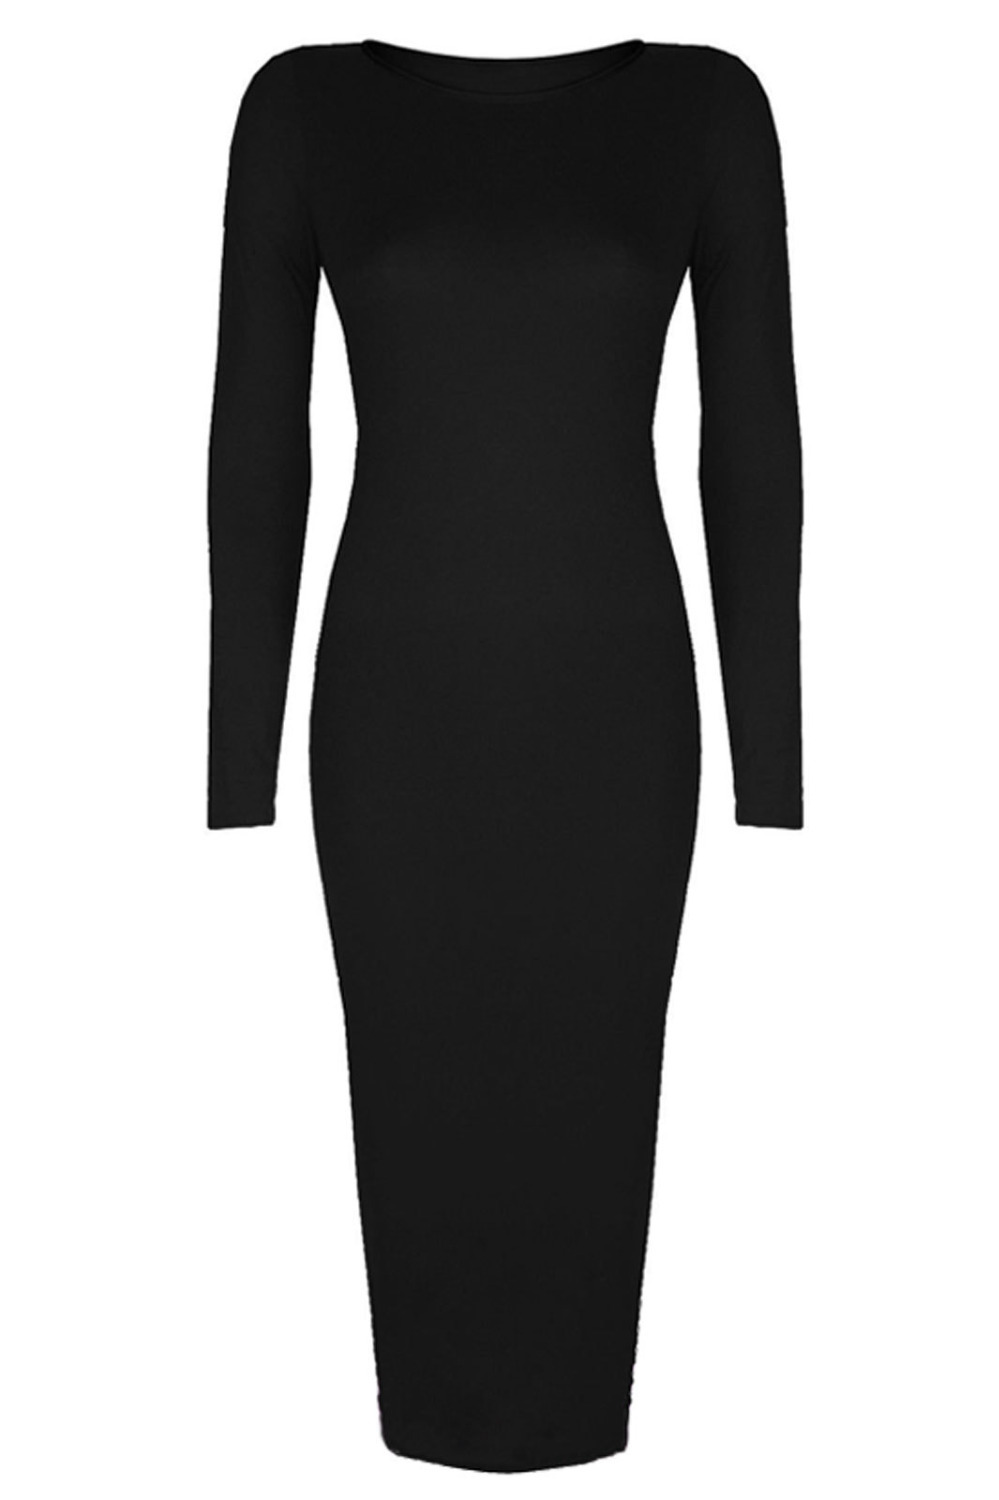 Collection Mid Calf Bodycon Dresses Pictures - Reikian